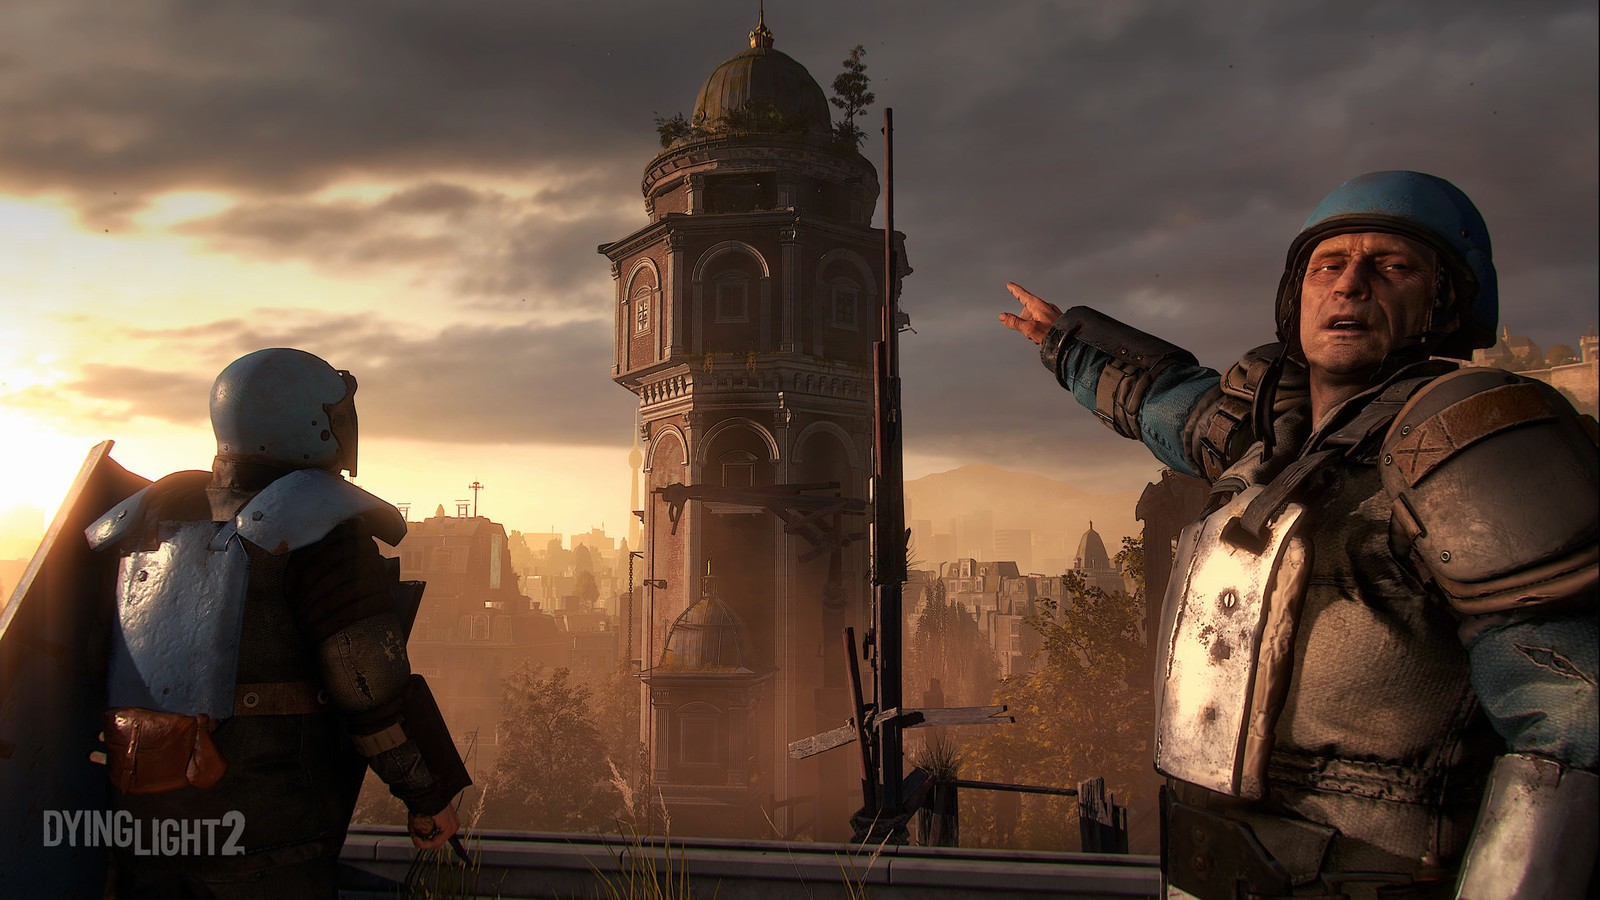 People Don't Really Need Bigger Worlds in Games, They Need Better Ones, Says Dying Light 2 Director